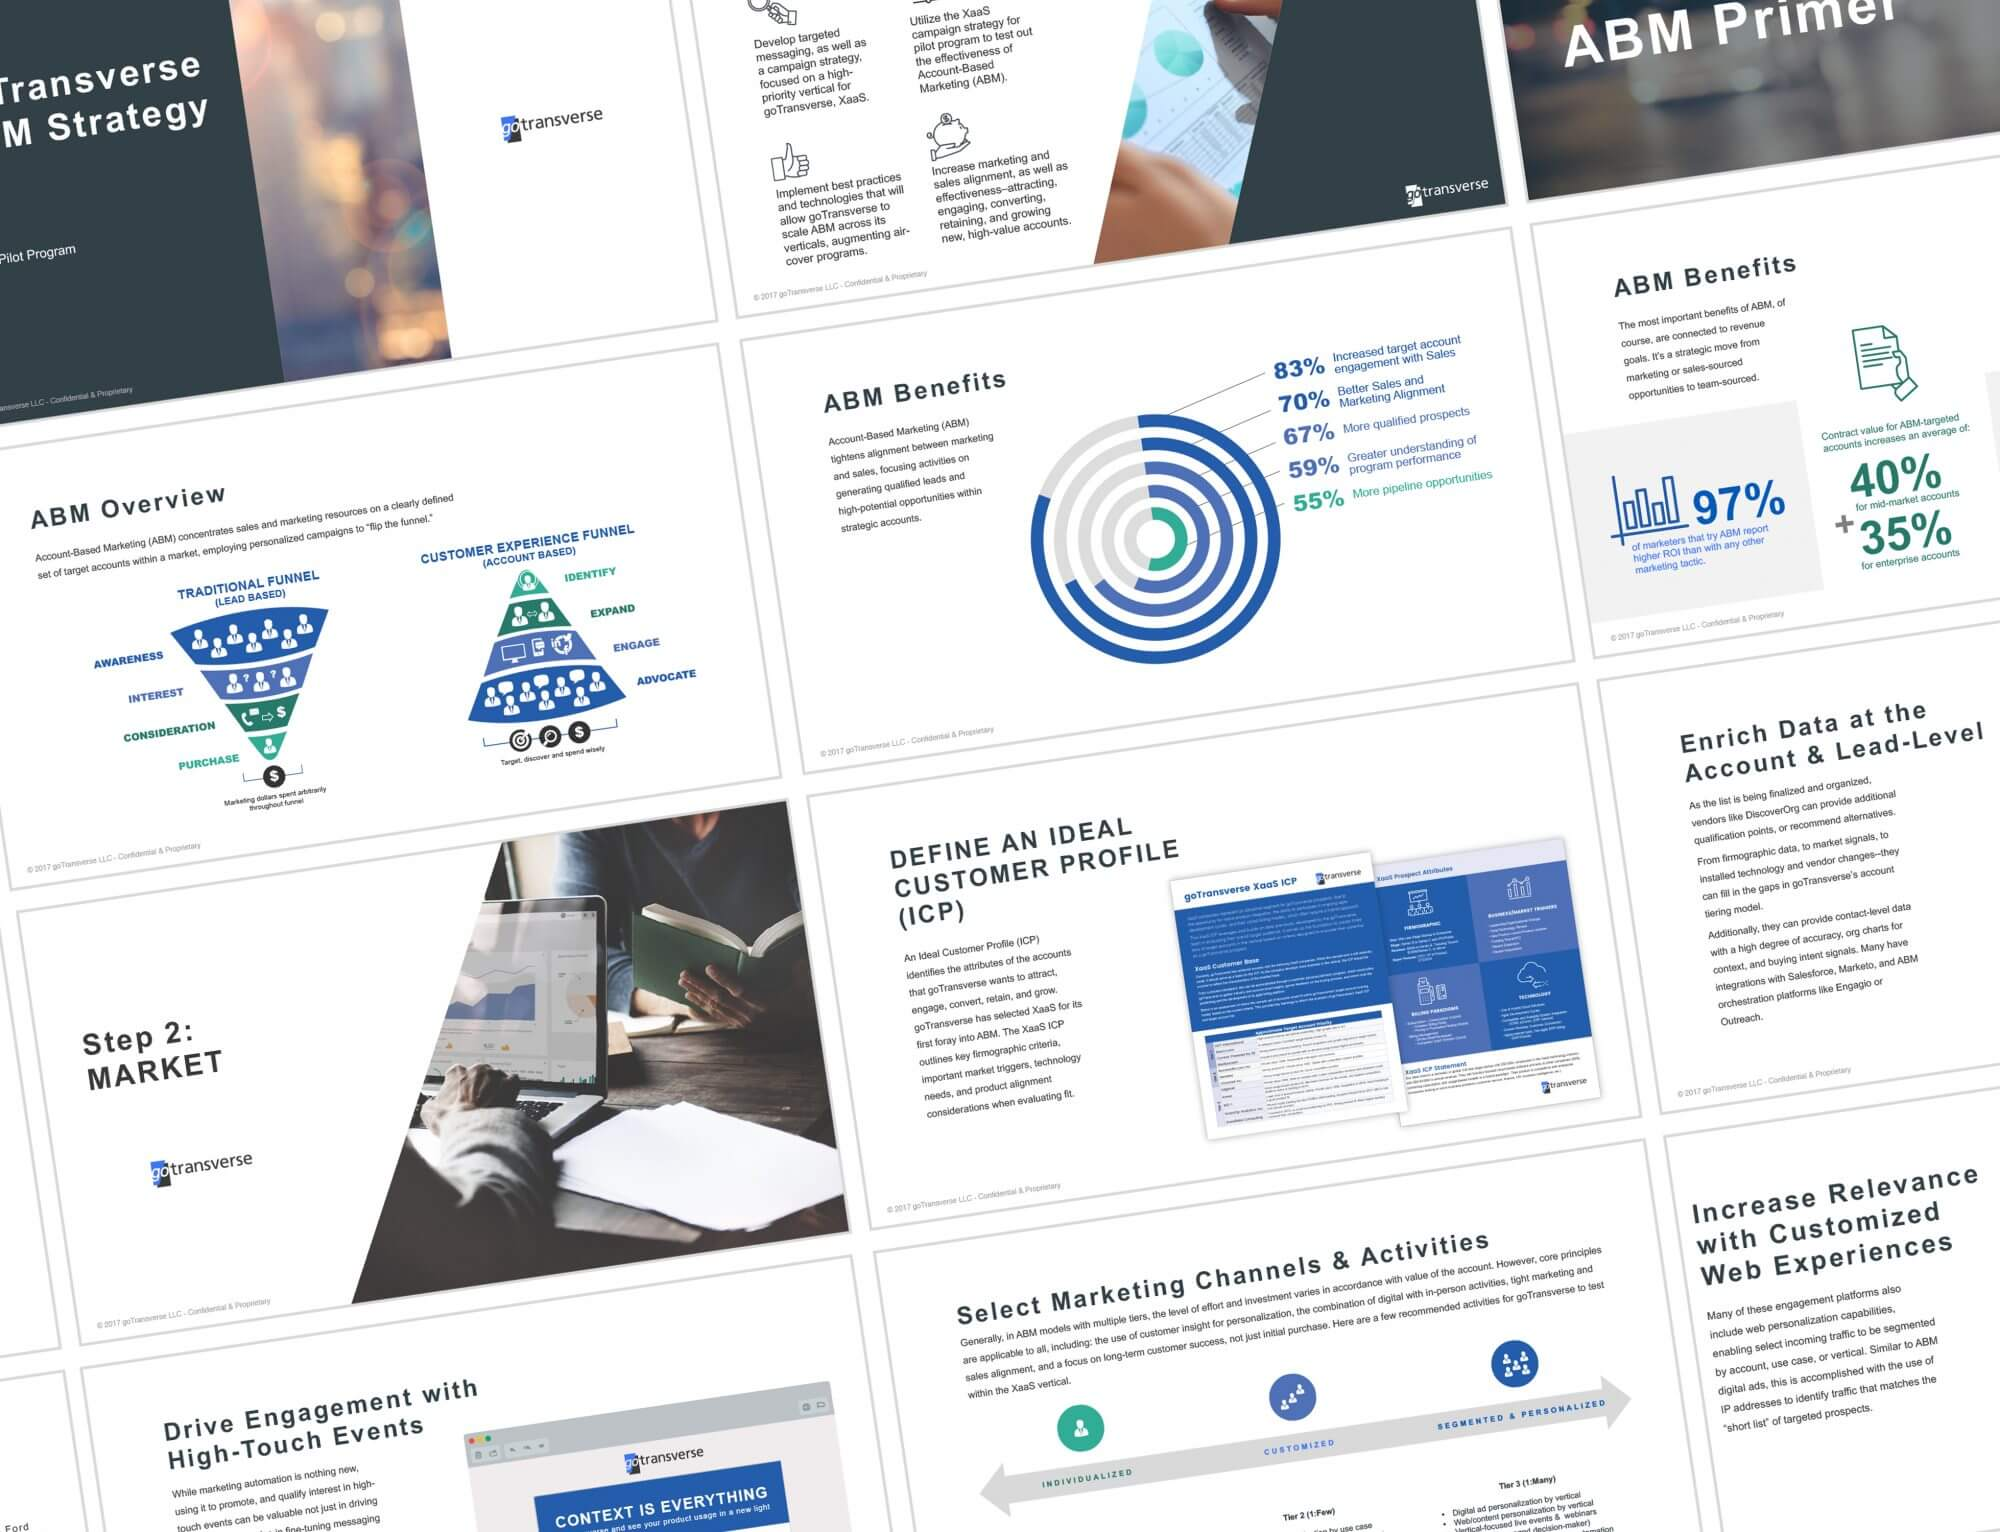 ABM Framework example presentation design inspiration help with infographic elements